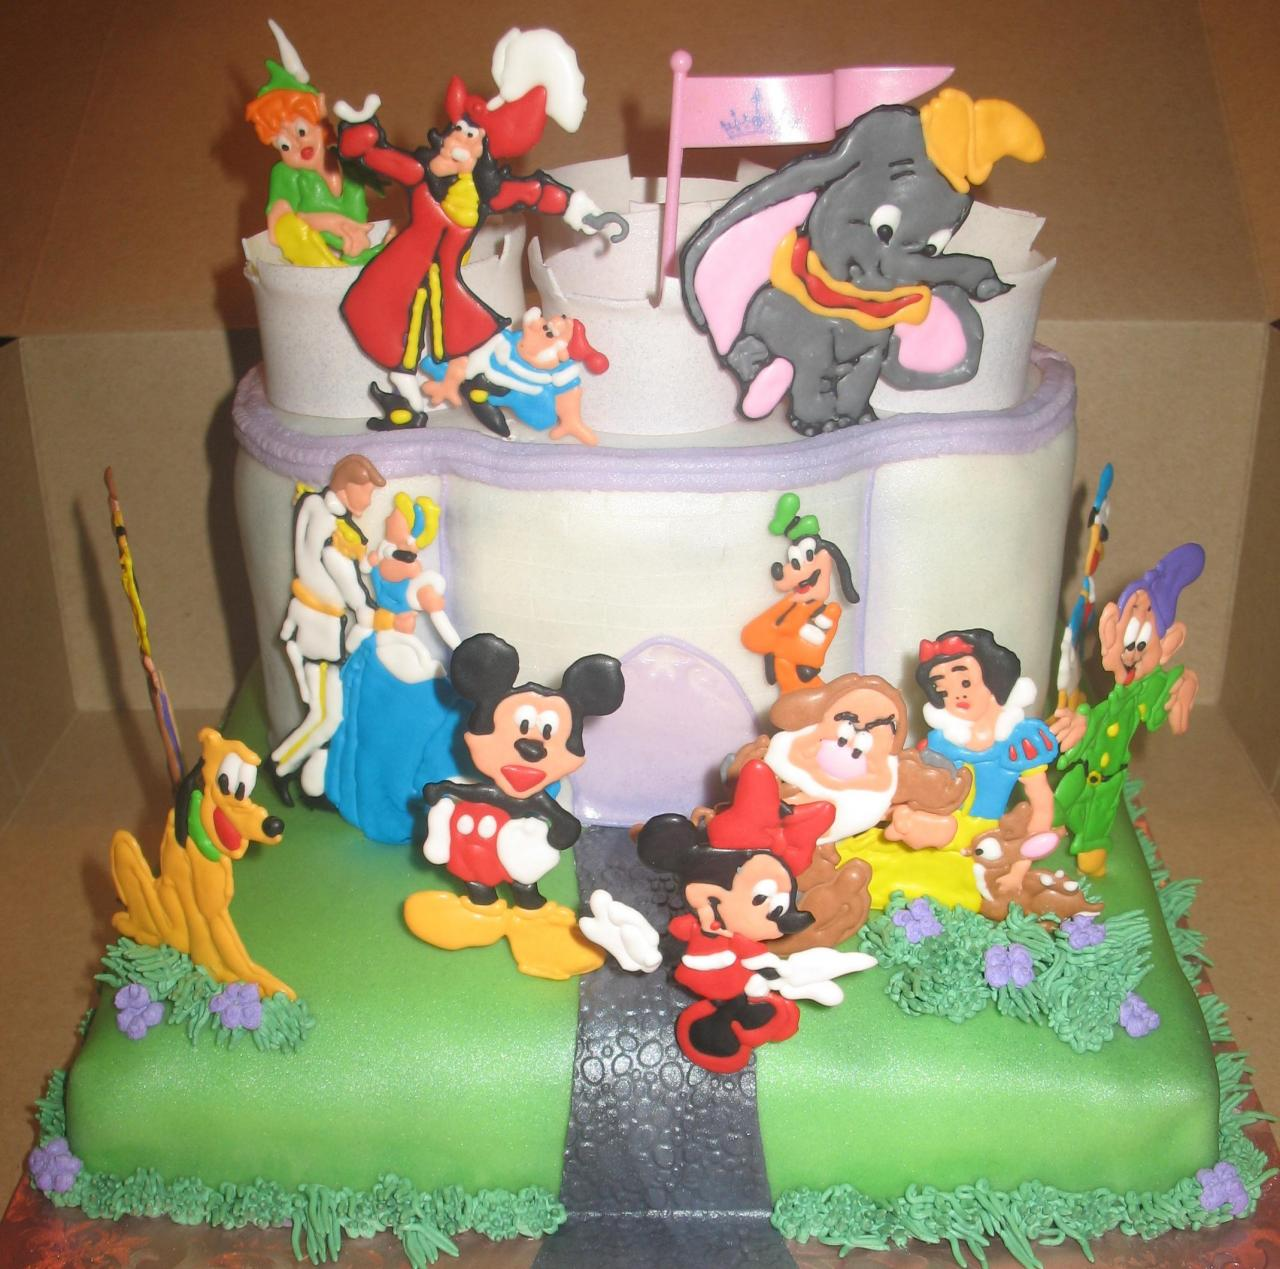 Birthday Cake With Characters Image Inspiration of Cake and